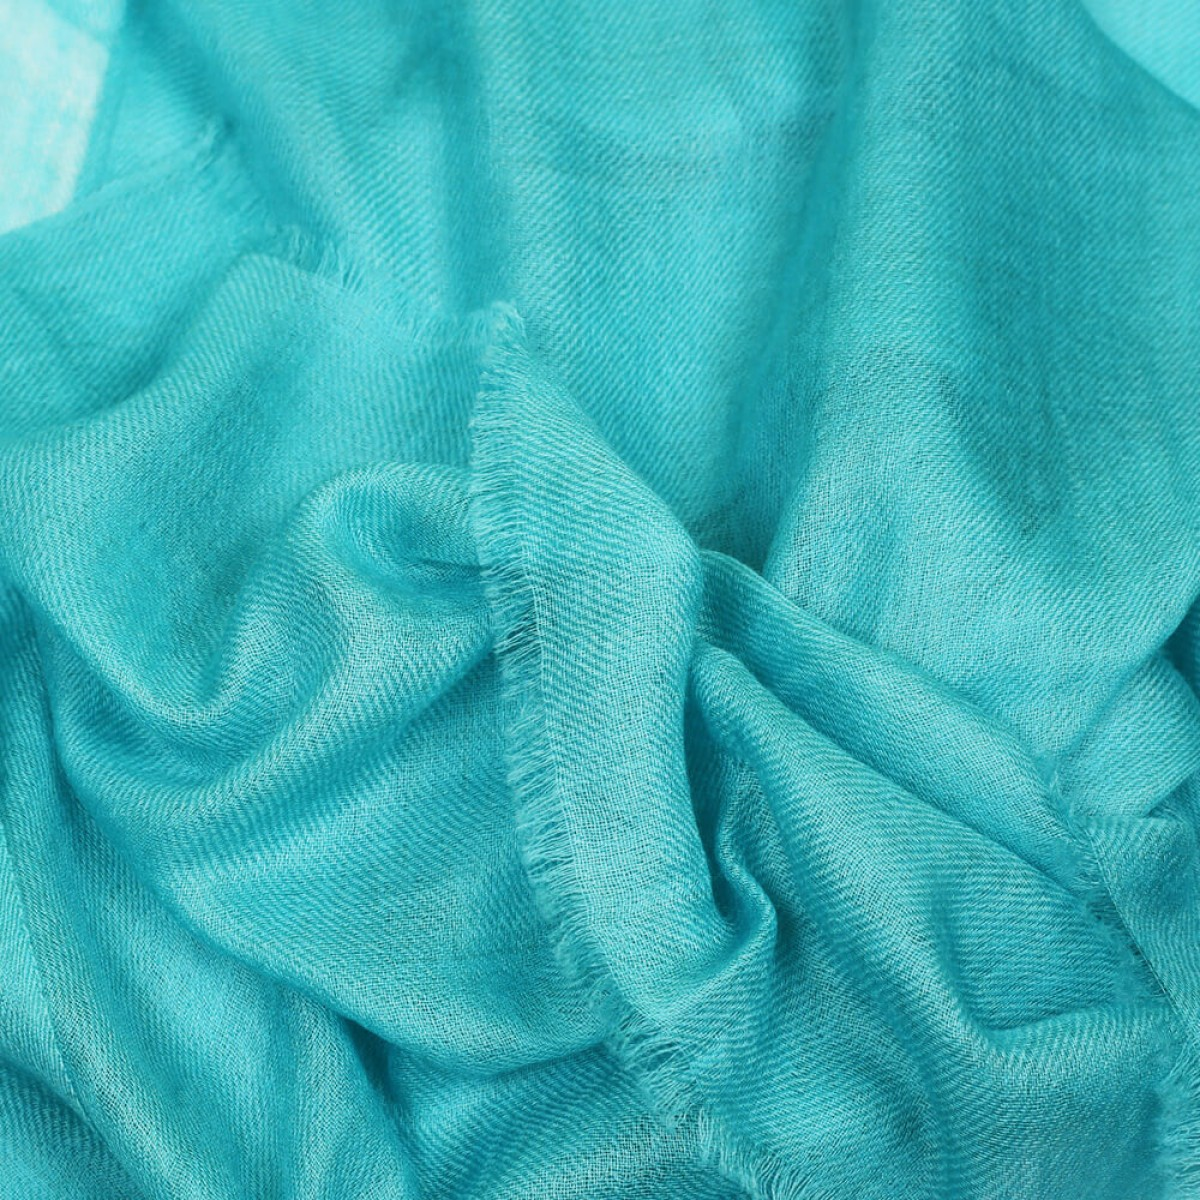 Sheer Pashmina Scarf - Belize Teal